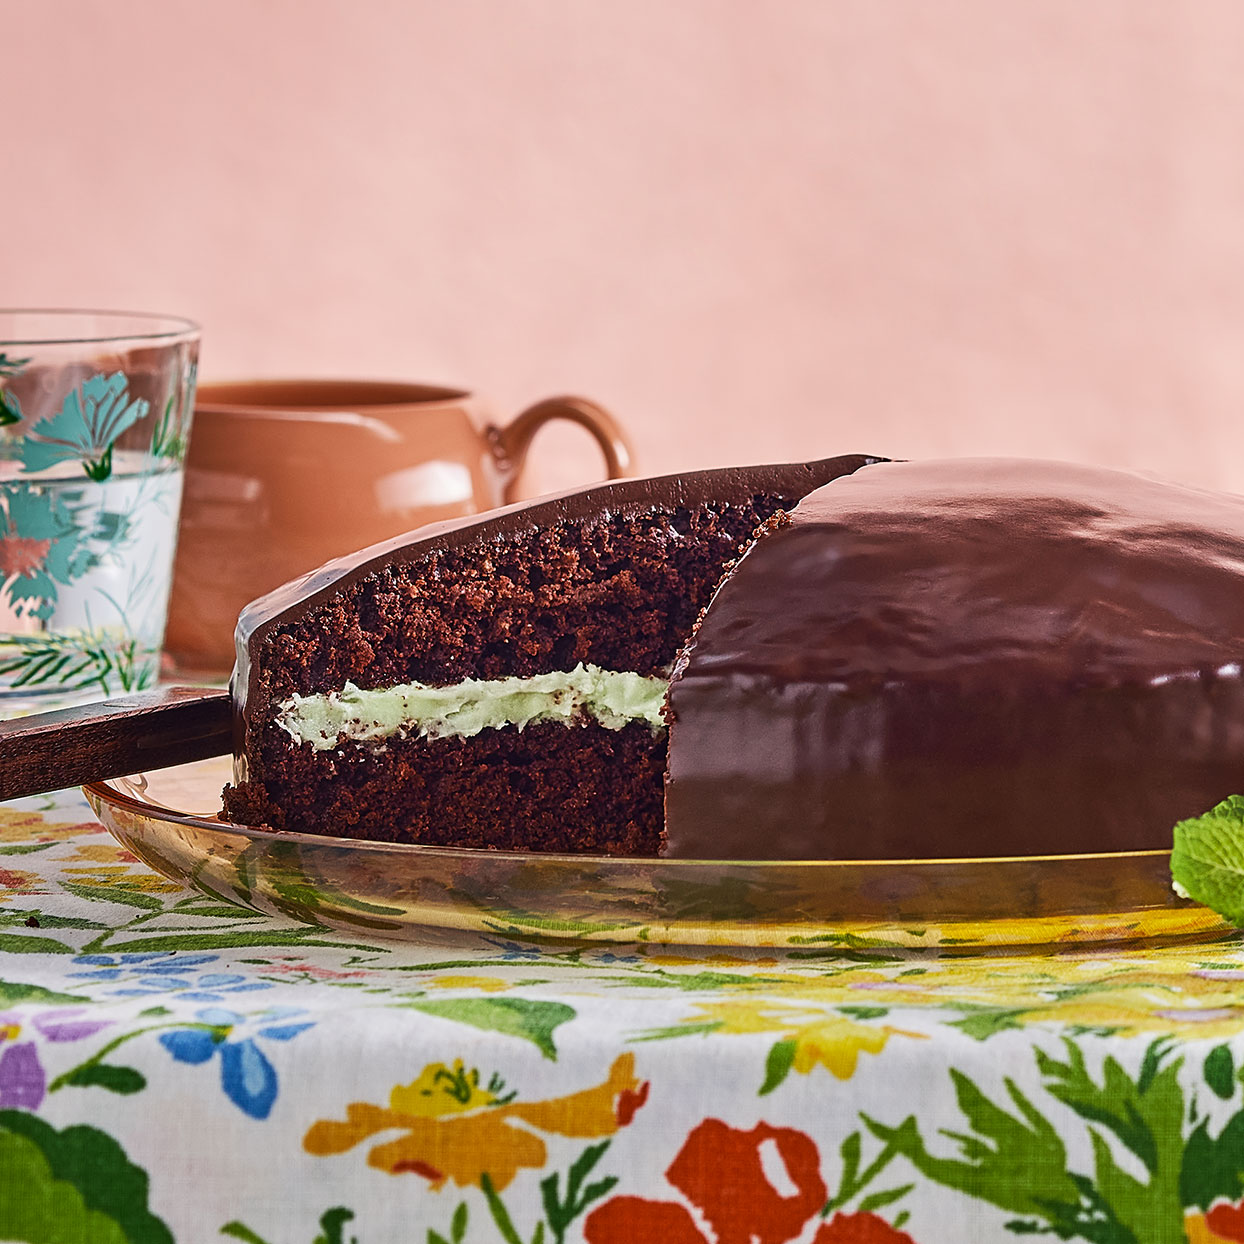 This mint chocolate cake is an homage to Andes Crème de Menthe Thins. It's rich and quite easy to whip up. Add a touch of food coloring to make the mint buttercream filling pale green if you'd like. Source: EatingWell Magazine, May 2020